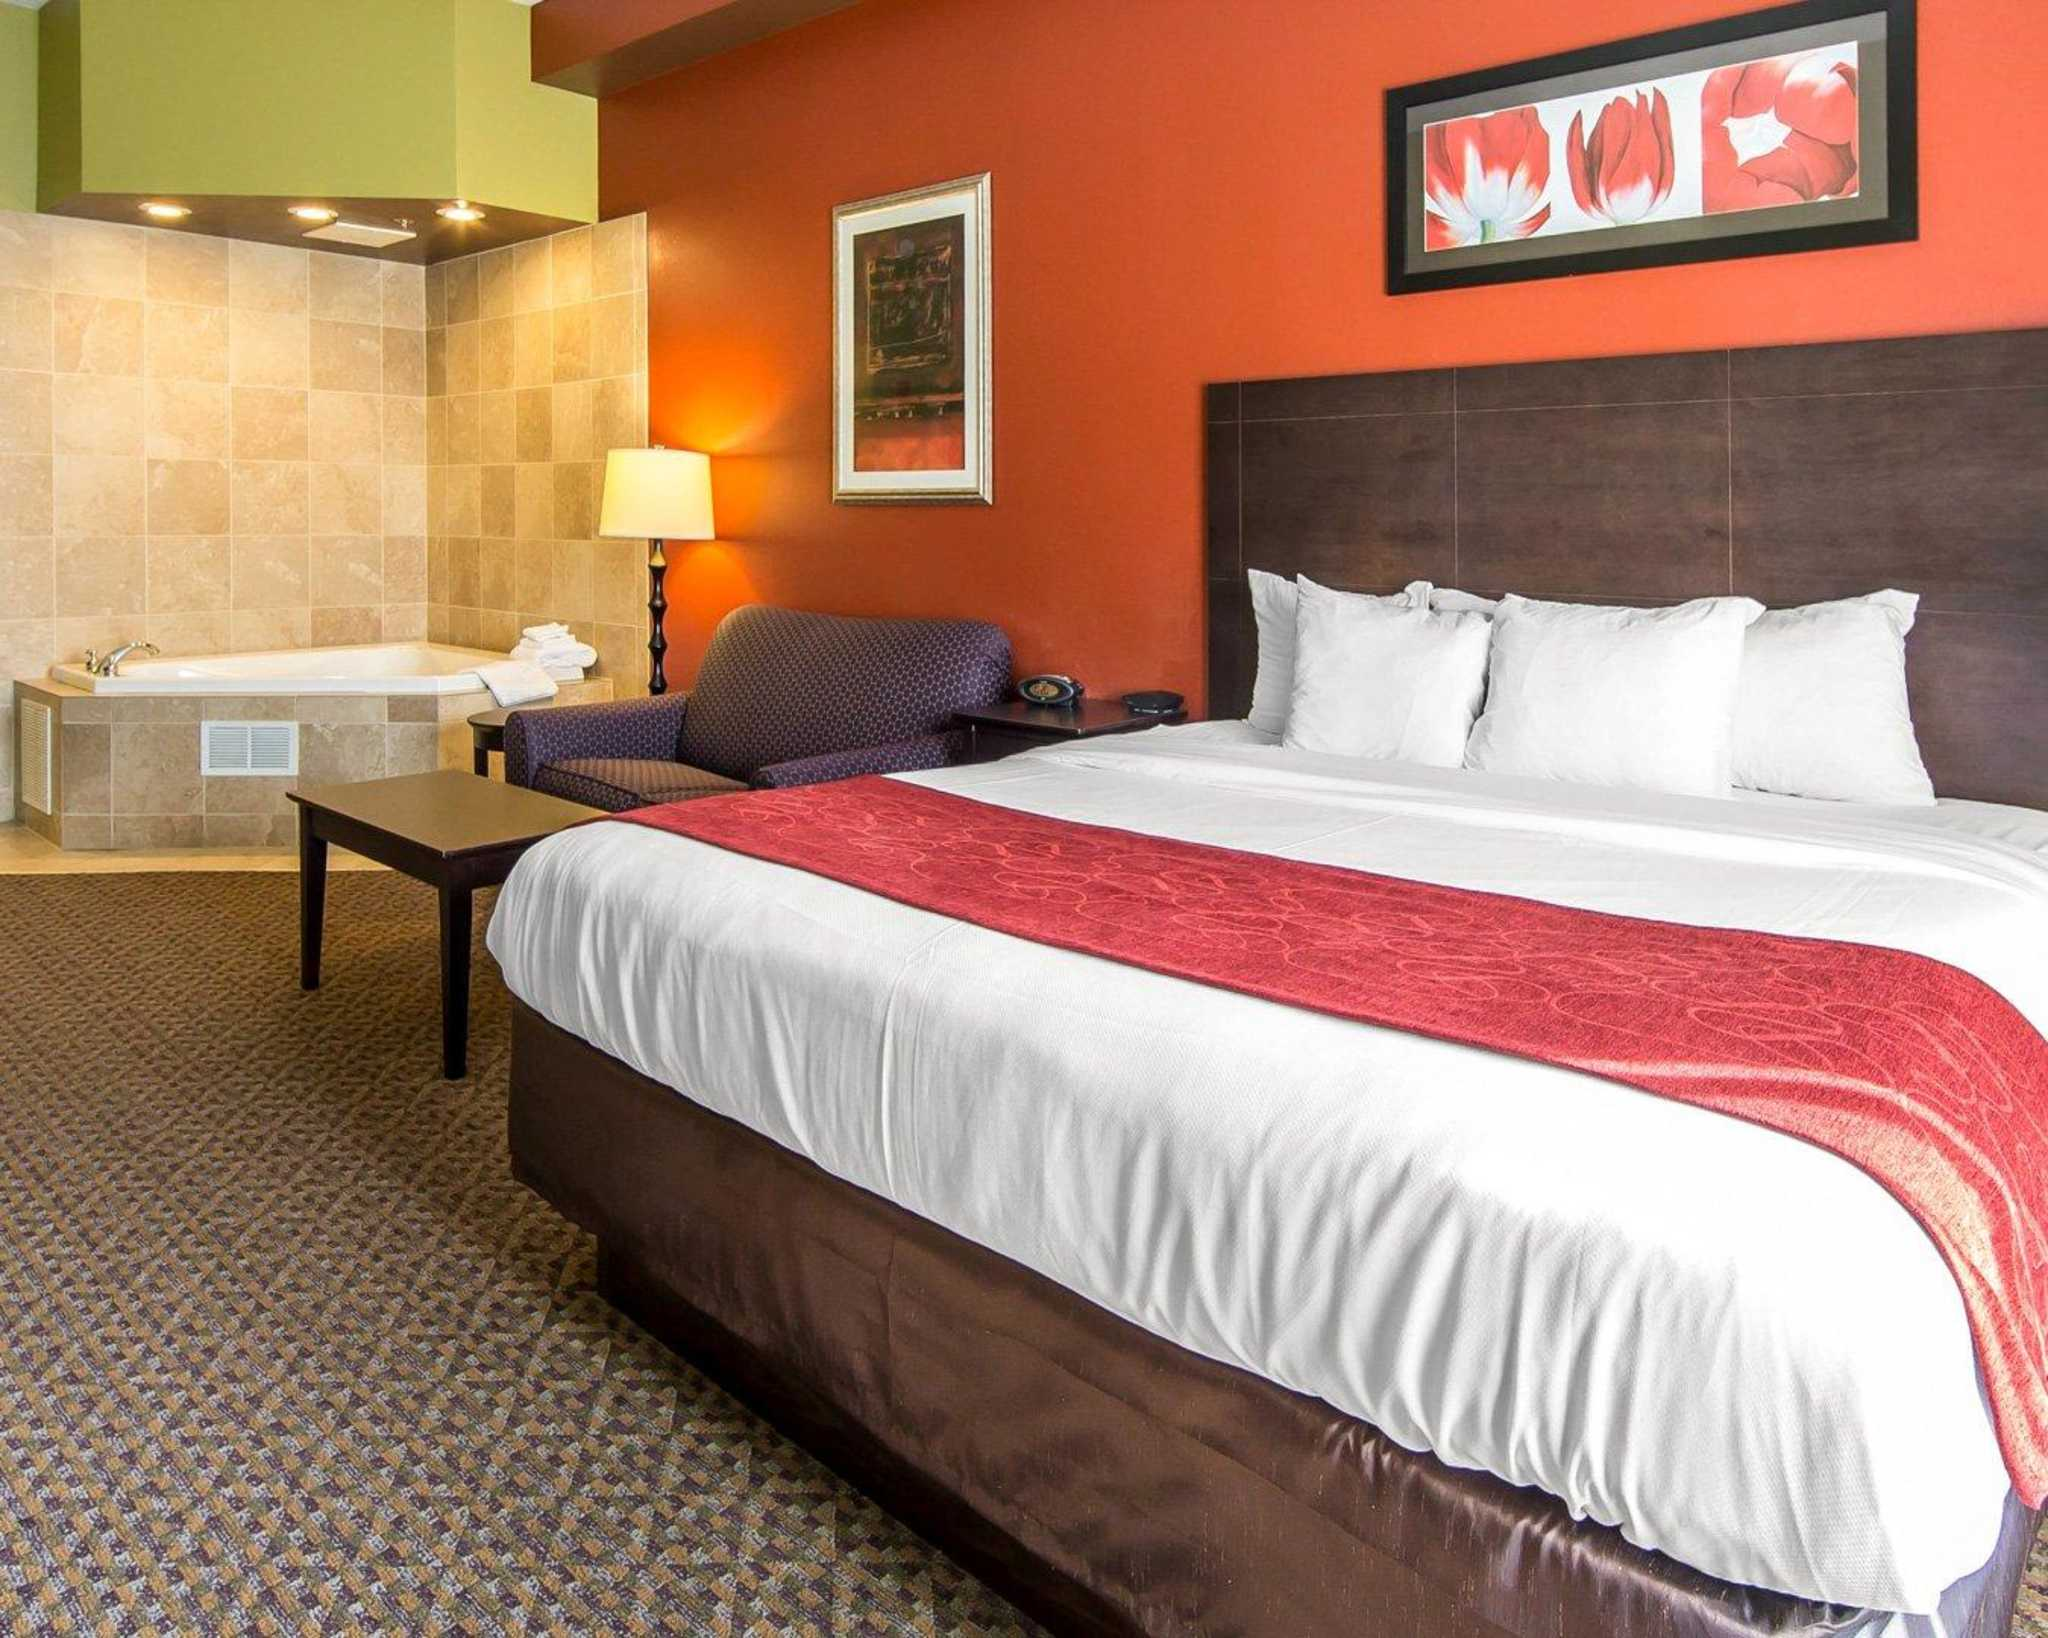 Comfort Suites East Coupons near me in Knoxville | 8coupons